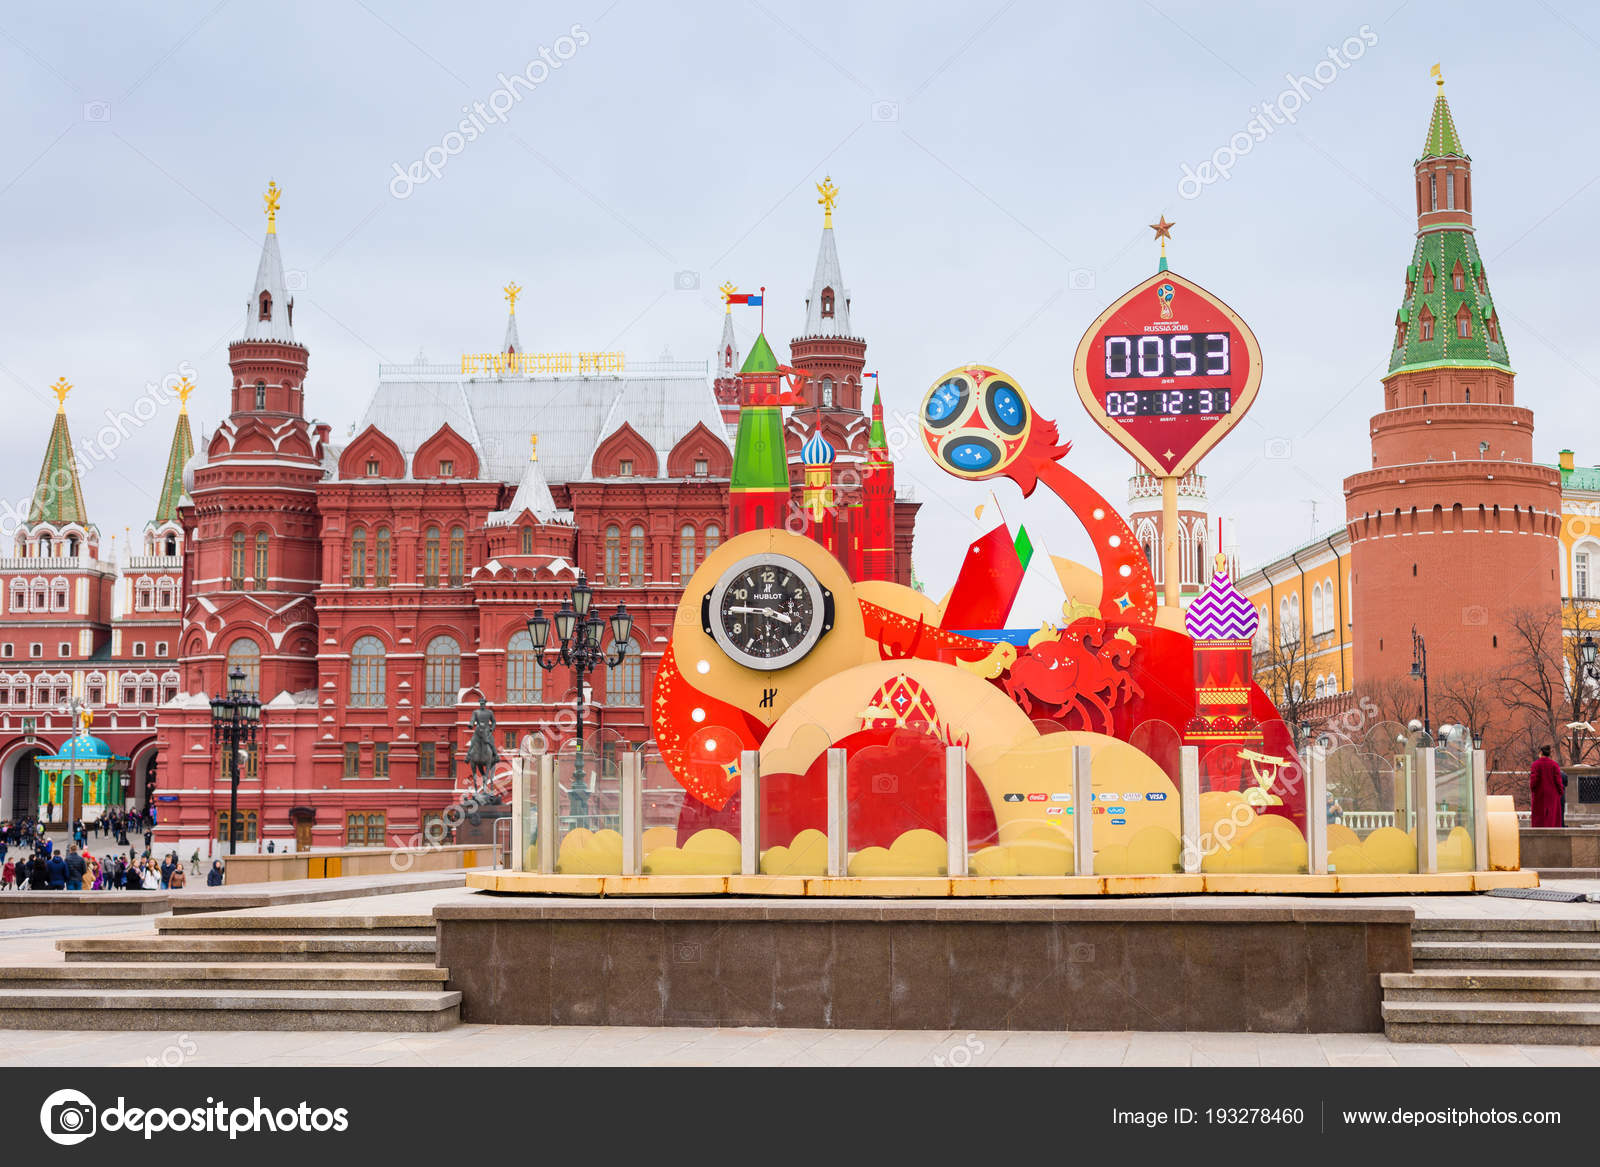 Fifa world cup 2018 countdown clock in central moscow editorial.